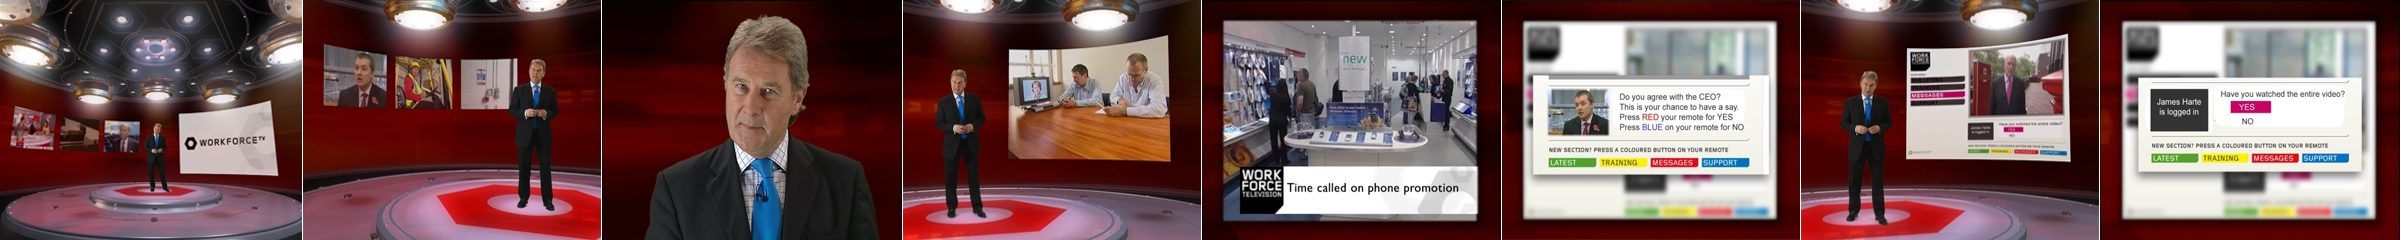 DMA Media - Workforce TV